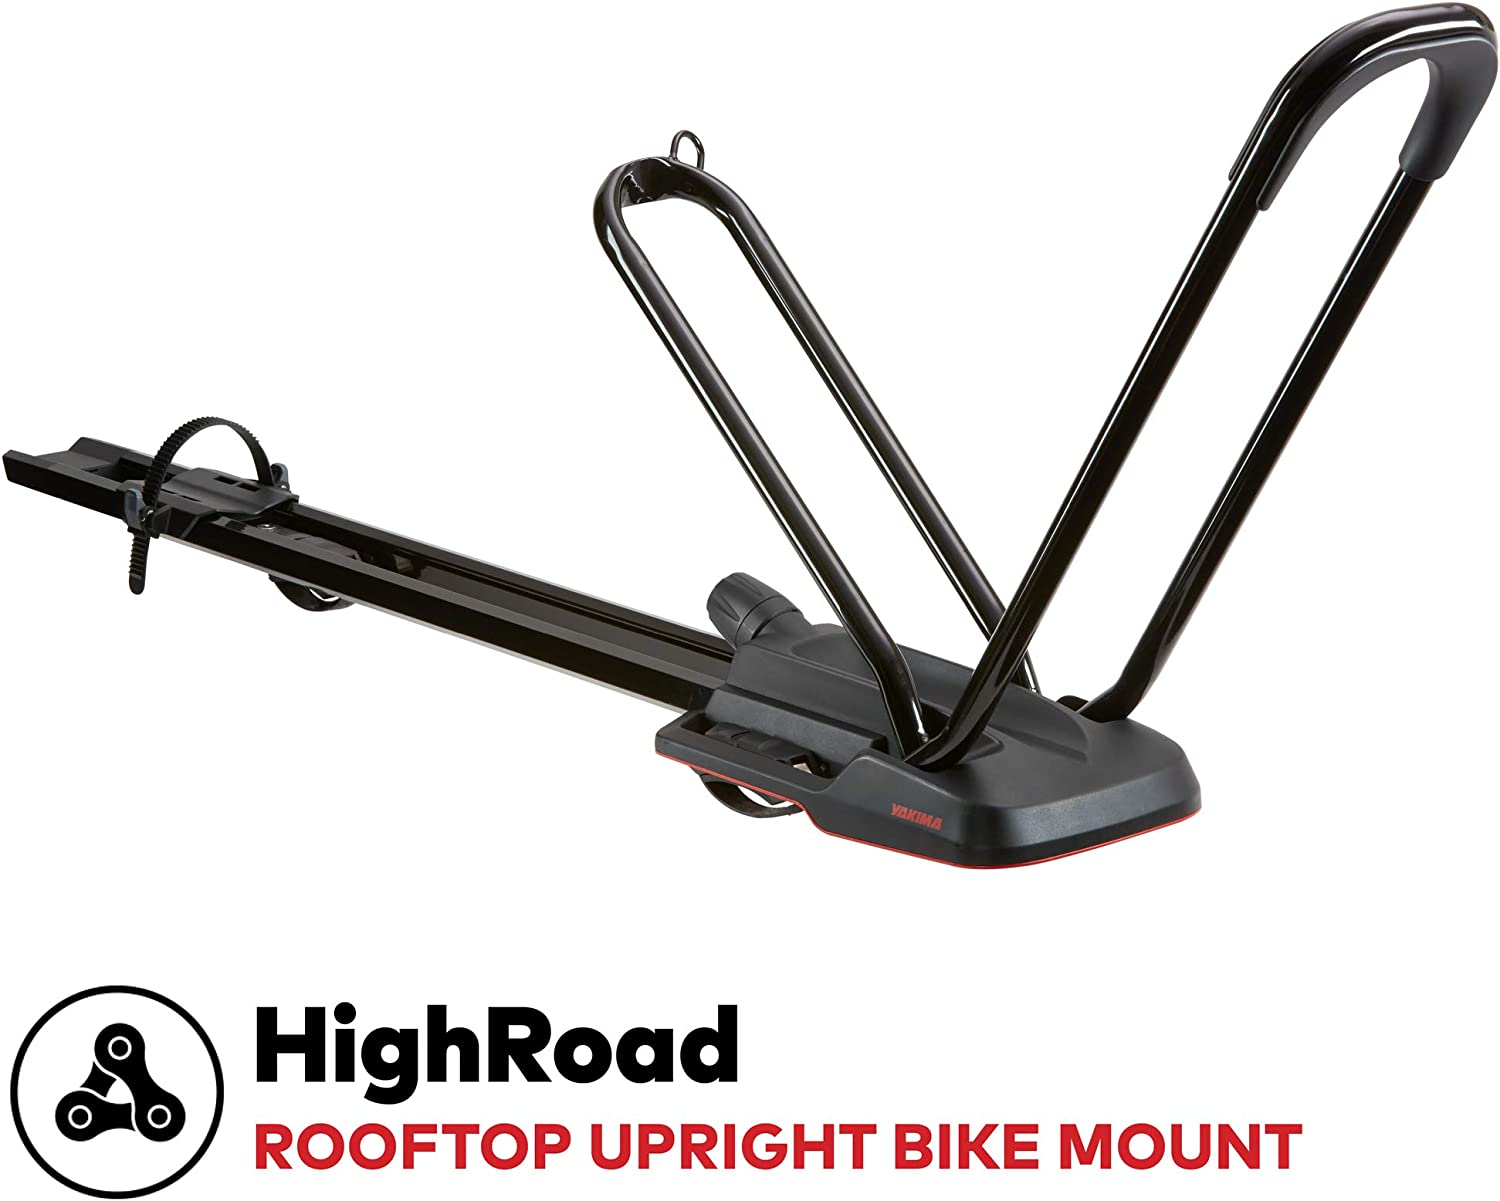 yakima – Highroad Wheel-On Mount Upright Bike Carrier for Roof Racks, 1 Bike Capacity